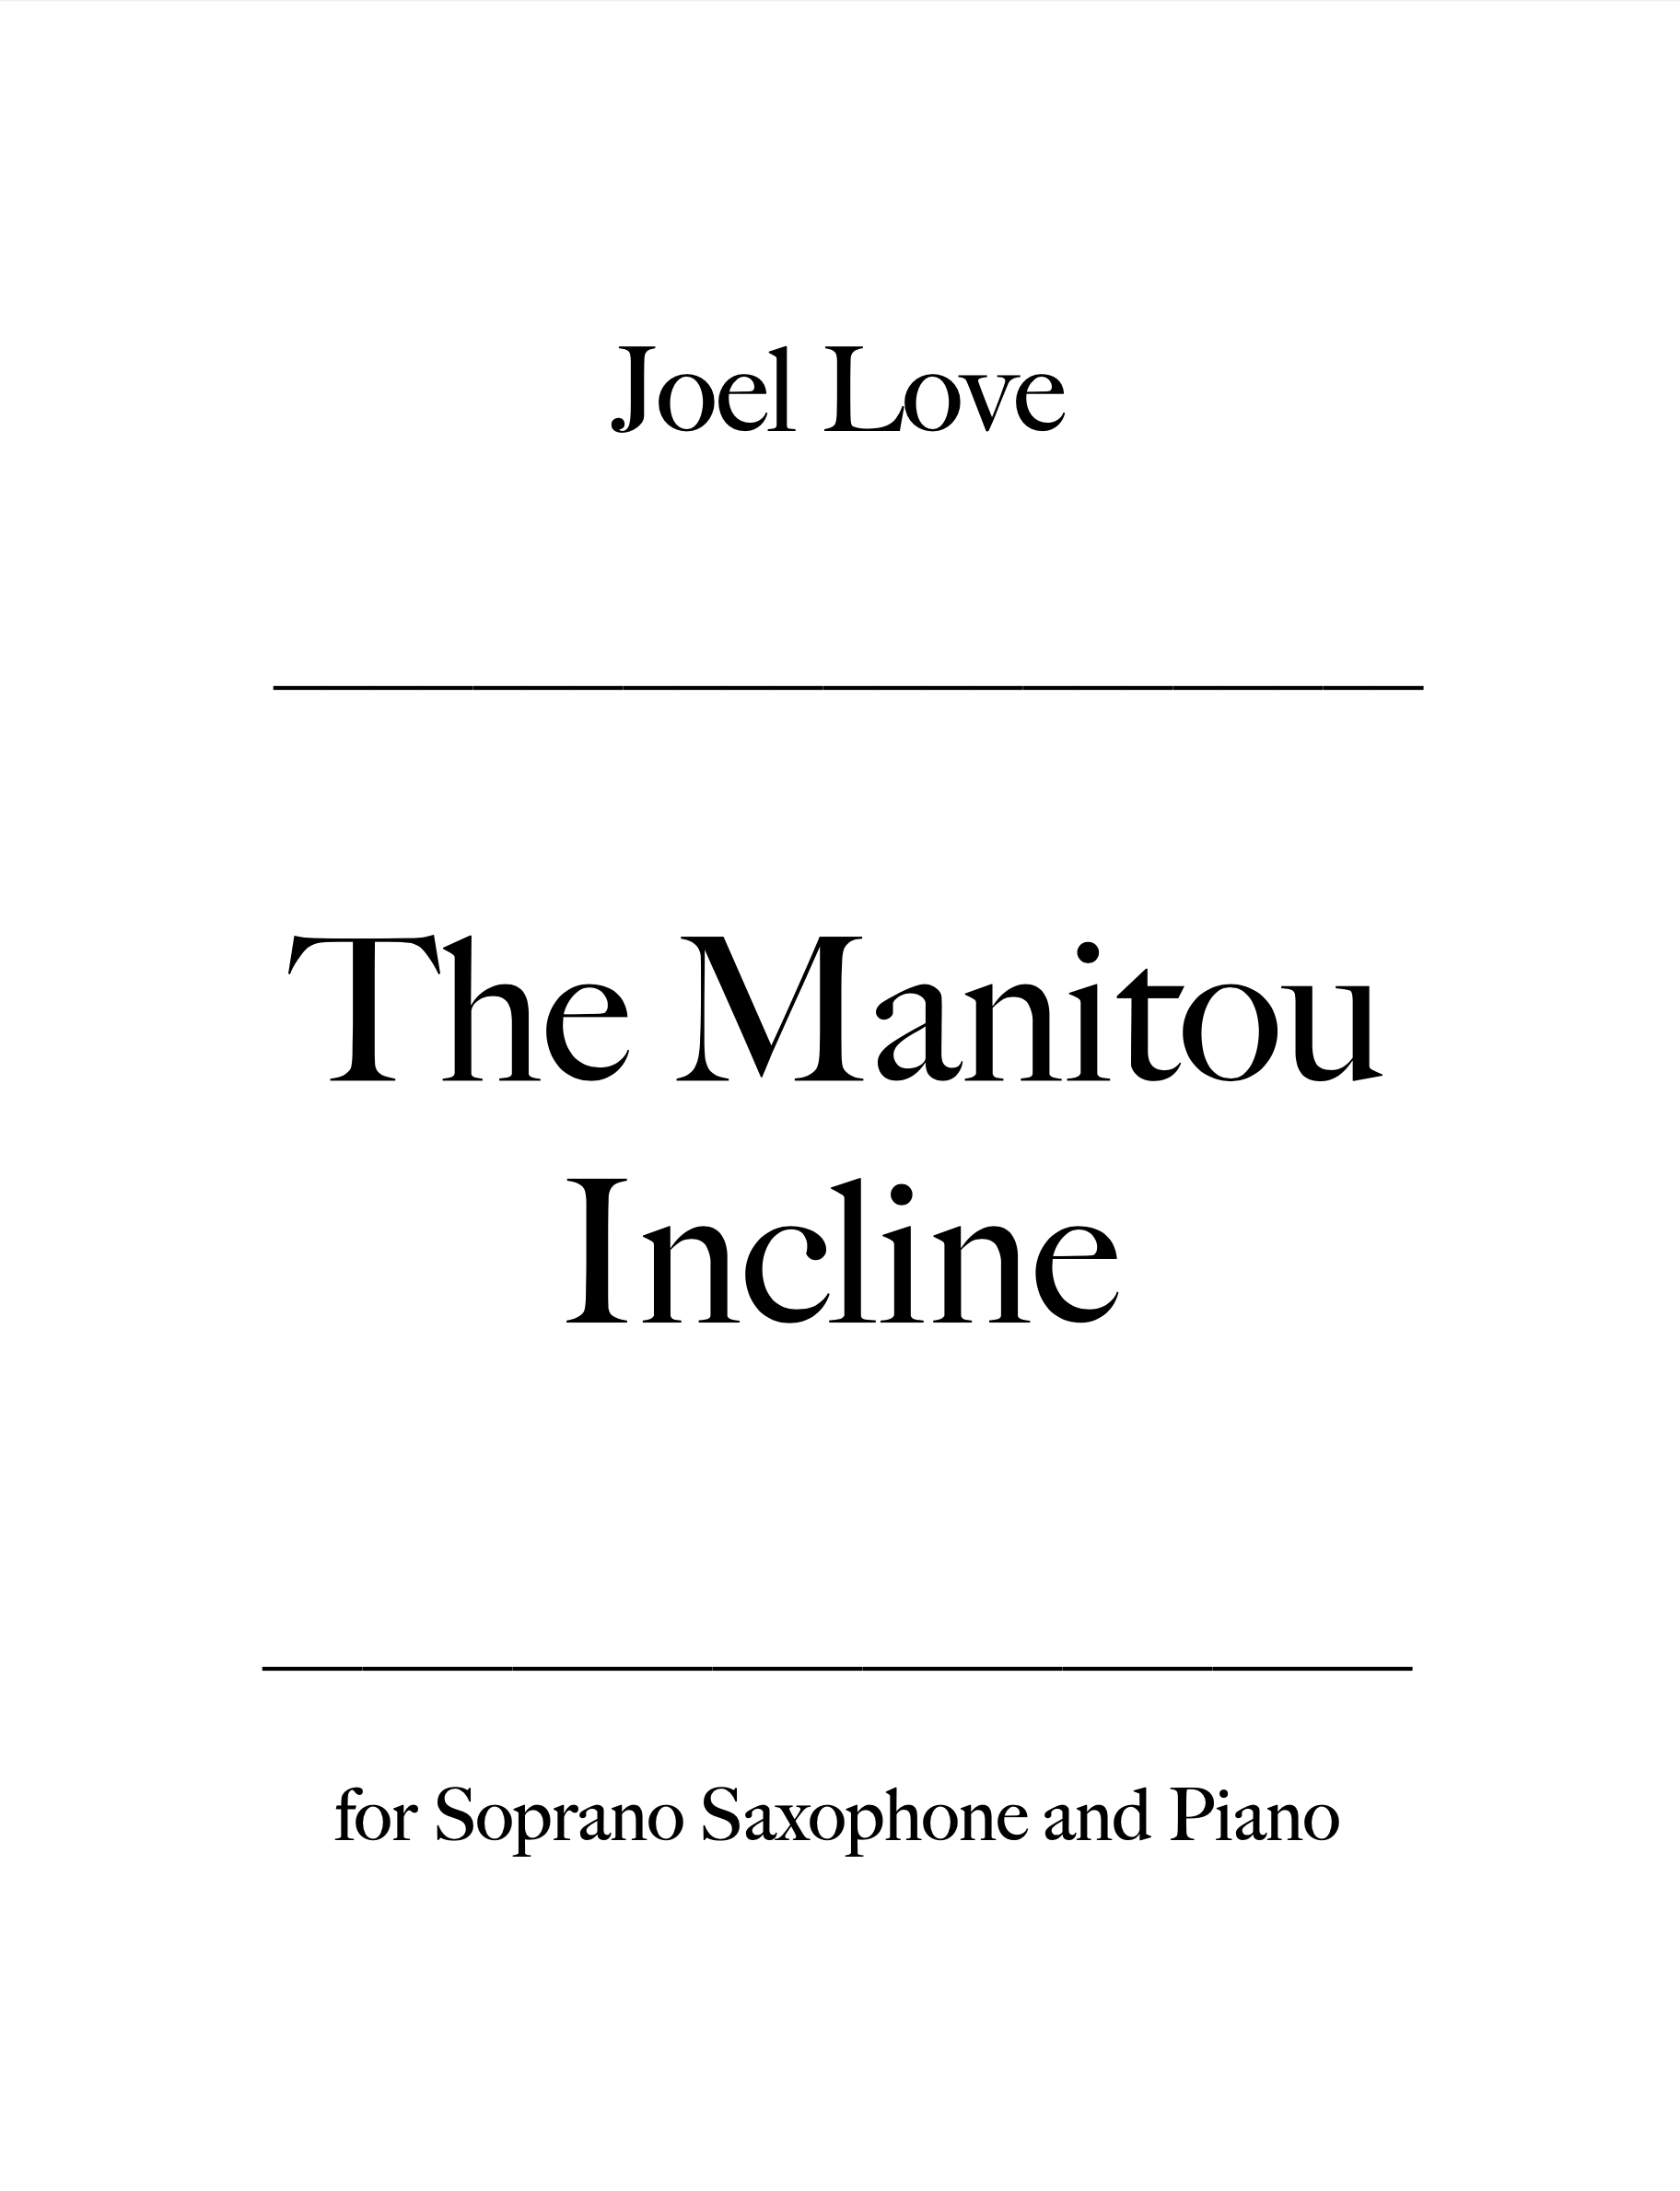 The Manitou Incline by Joel Love